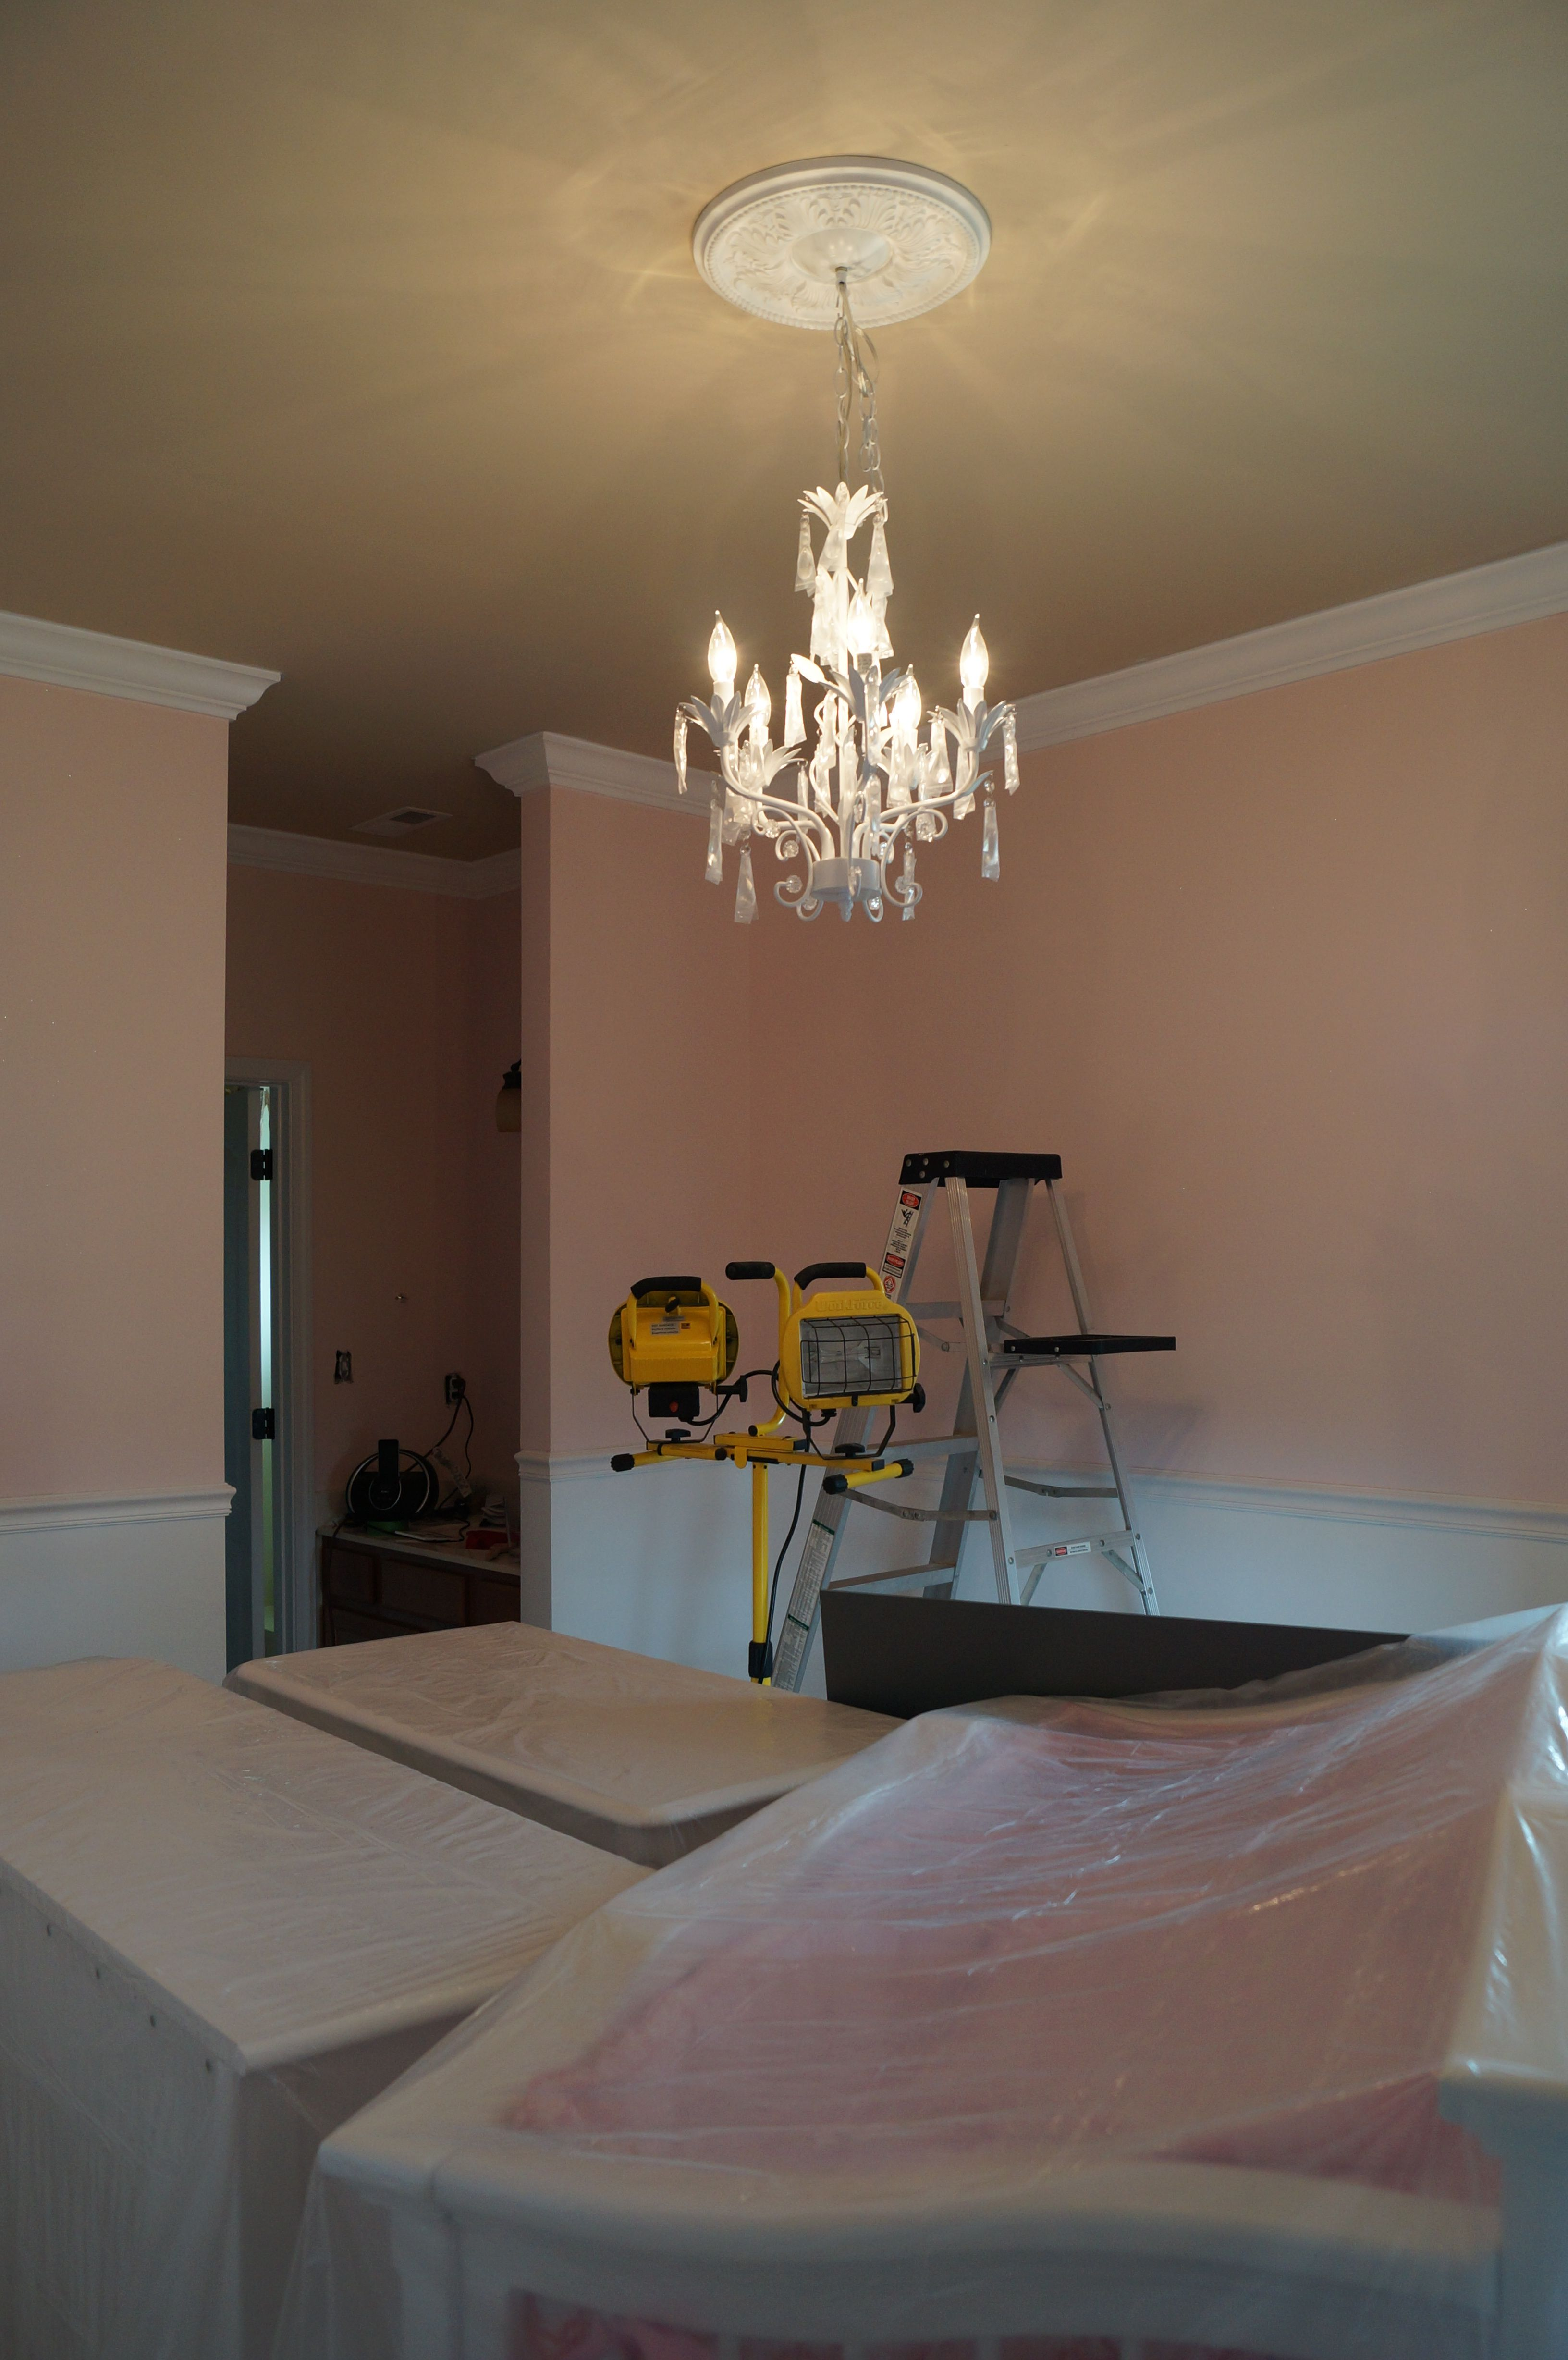 Baby Room Decor   Chandelier Added U0026 Ordered From Zulily . DIY / Chair Rail  / Crown Molding.